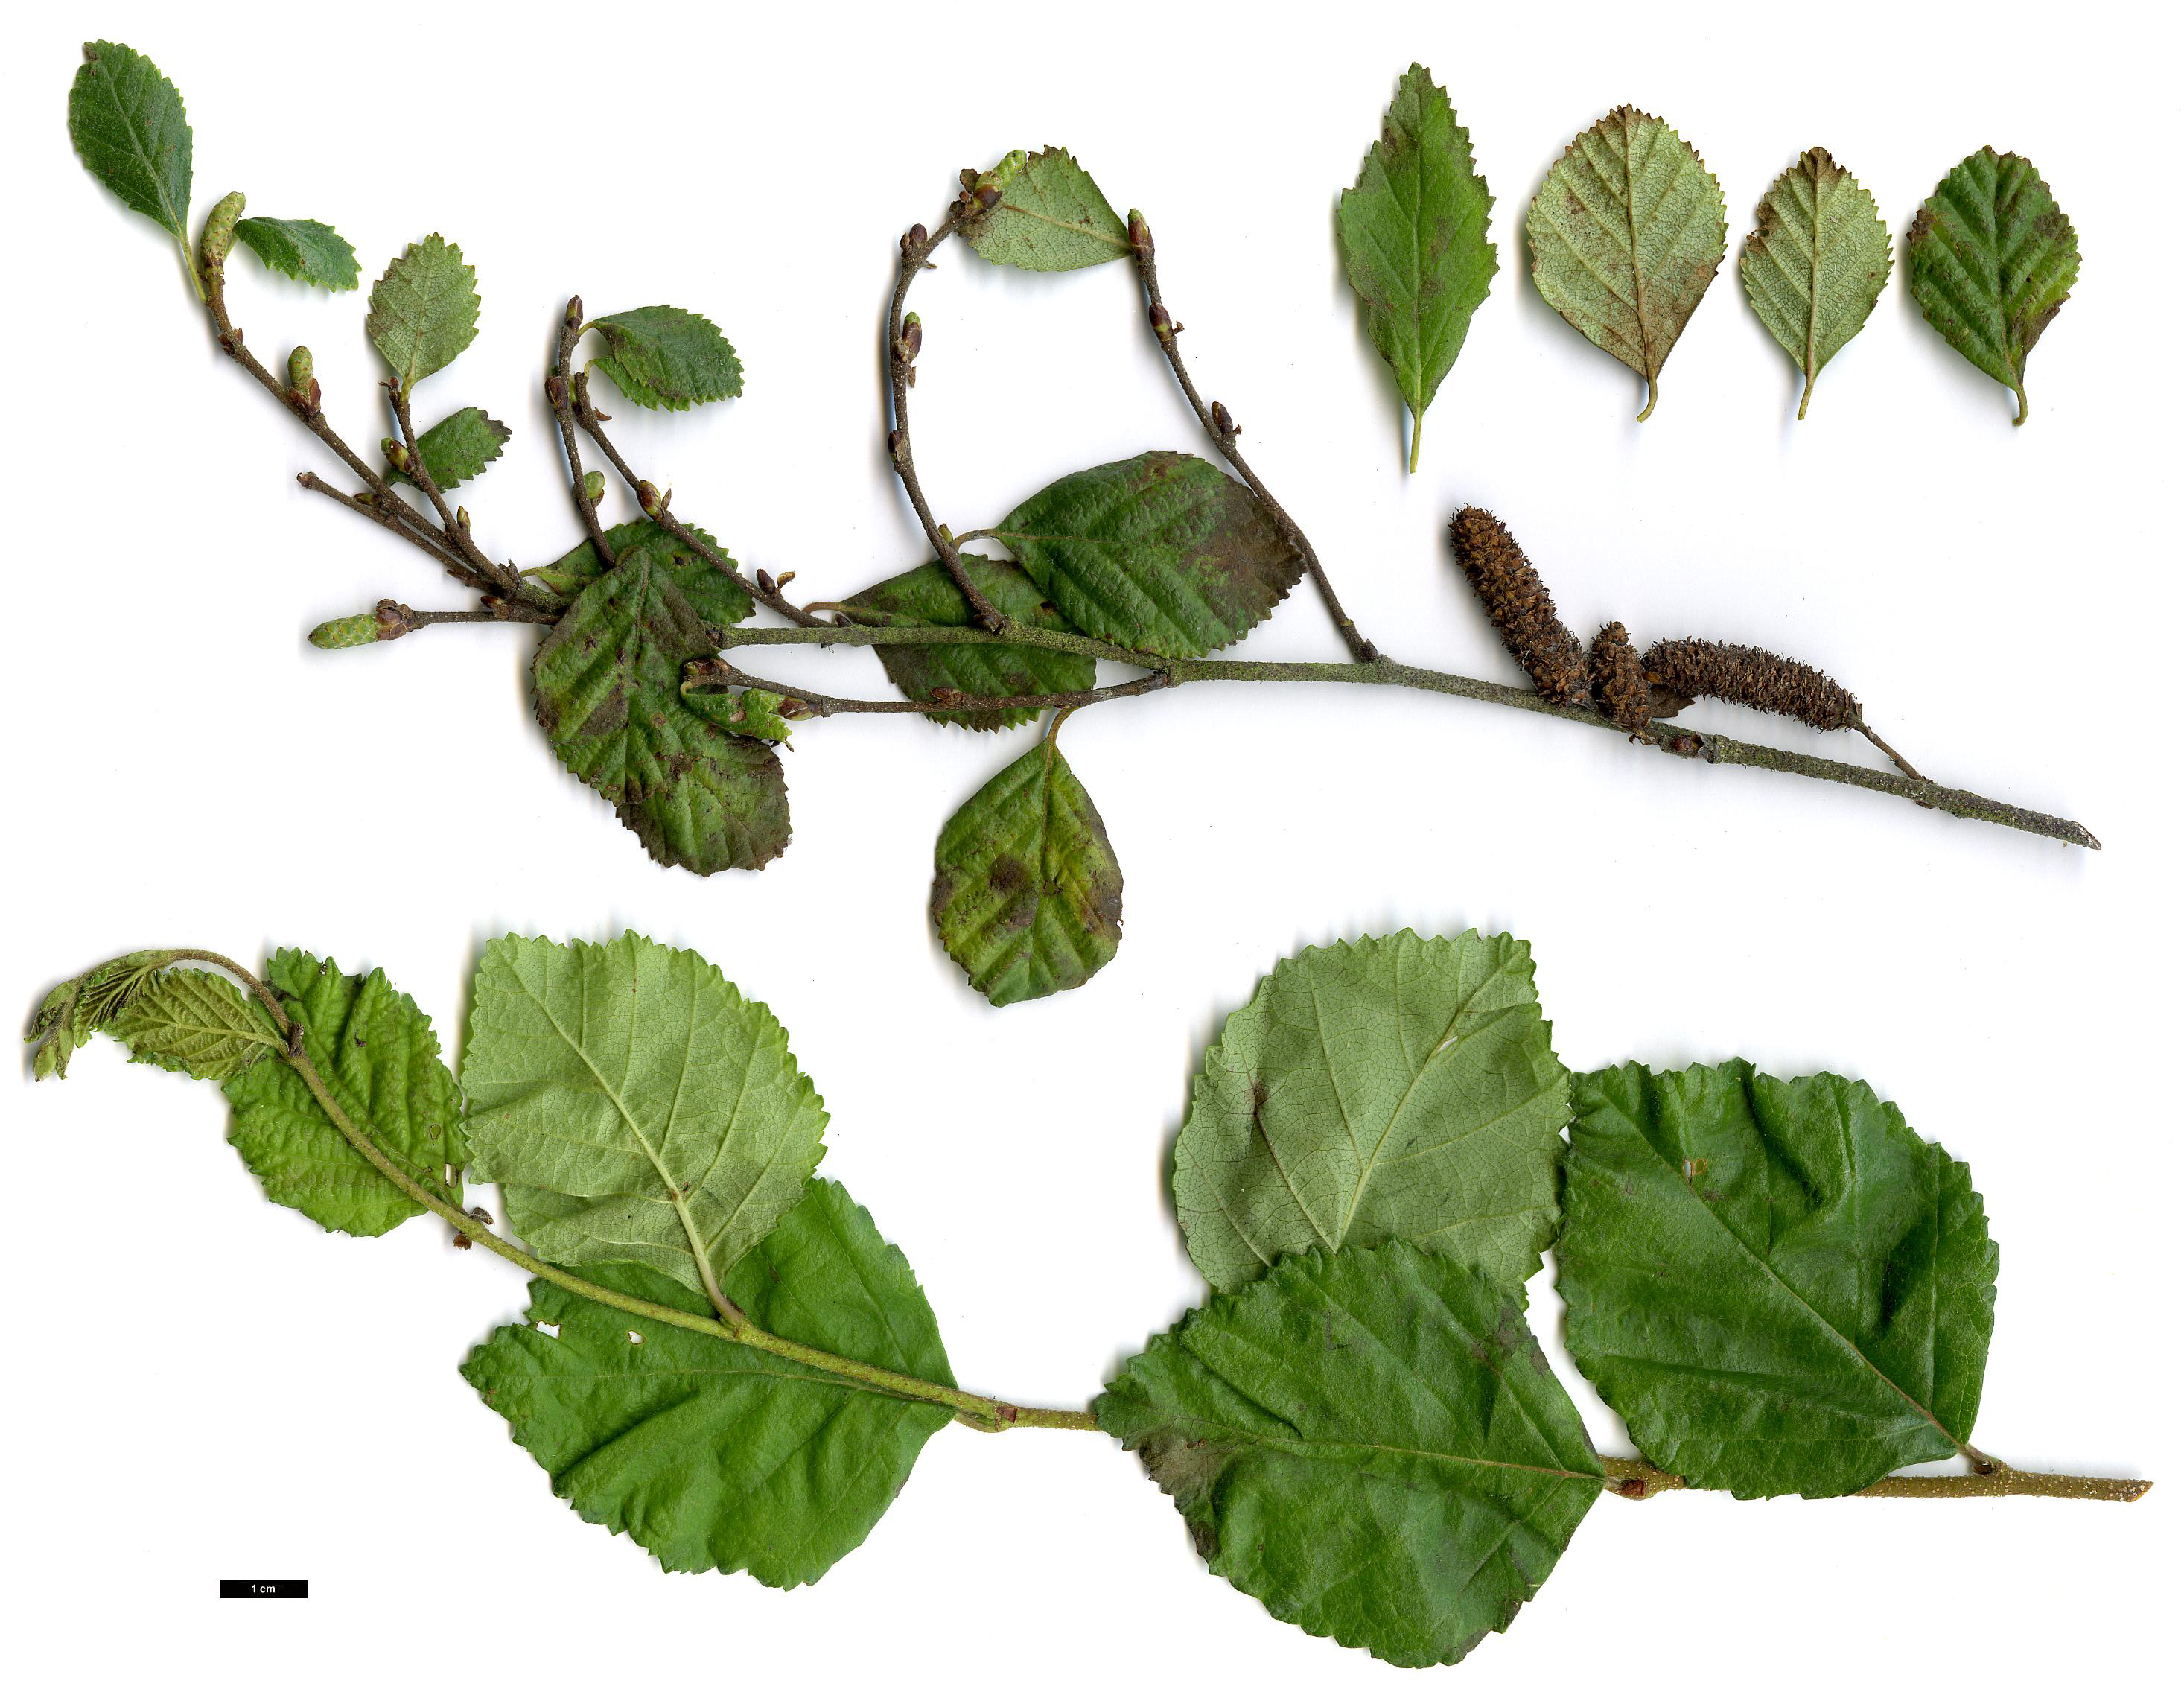 High resolution image: Family: Betulaceae - Genus: Betula - Specy: fruticosa - HerbariumCode: MFOST - Herbarium: Maurice Foster, Ivy Hatch (UK) - Number plant: 0000-Kew-KILO10-B.ovalifolia - Number picture: 03